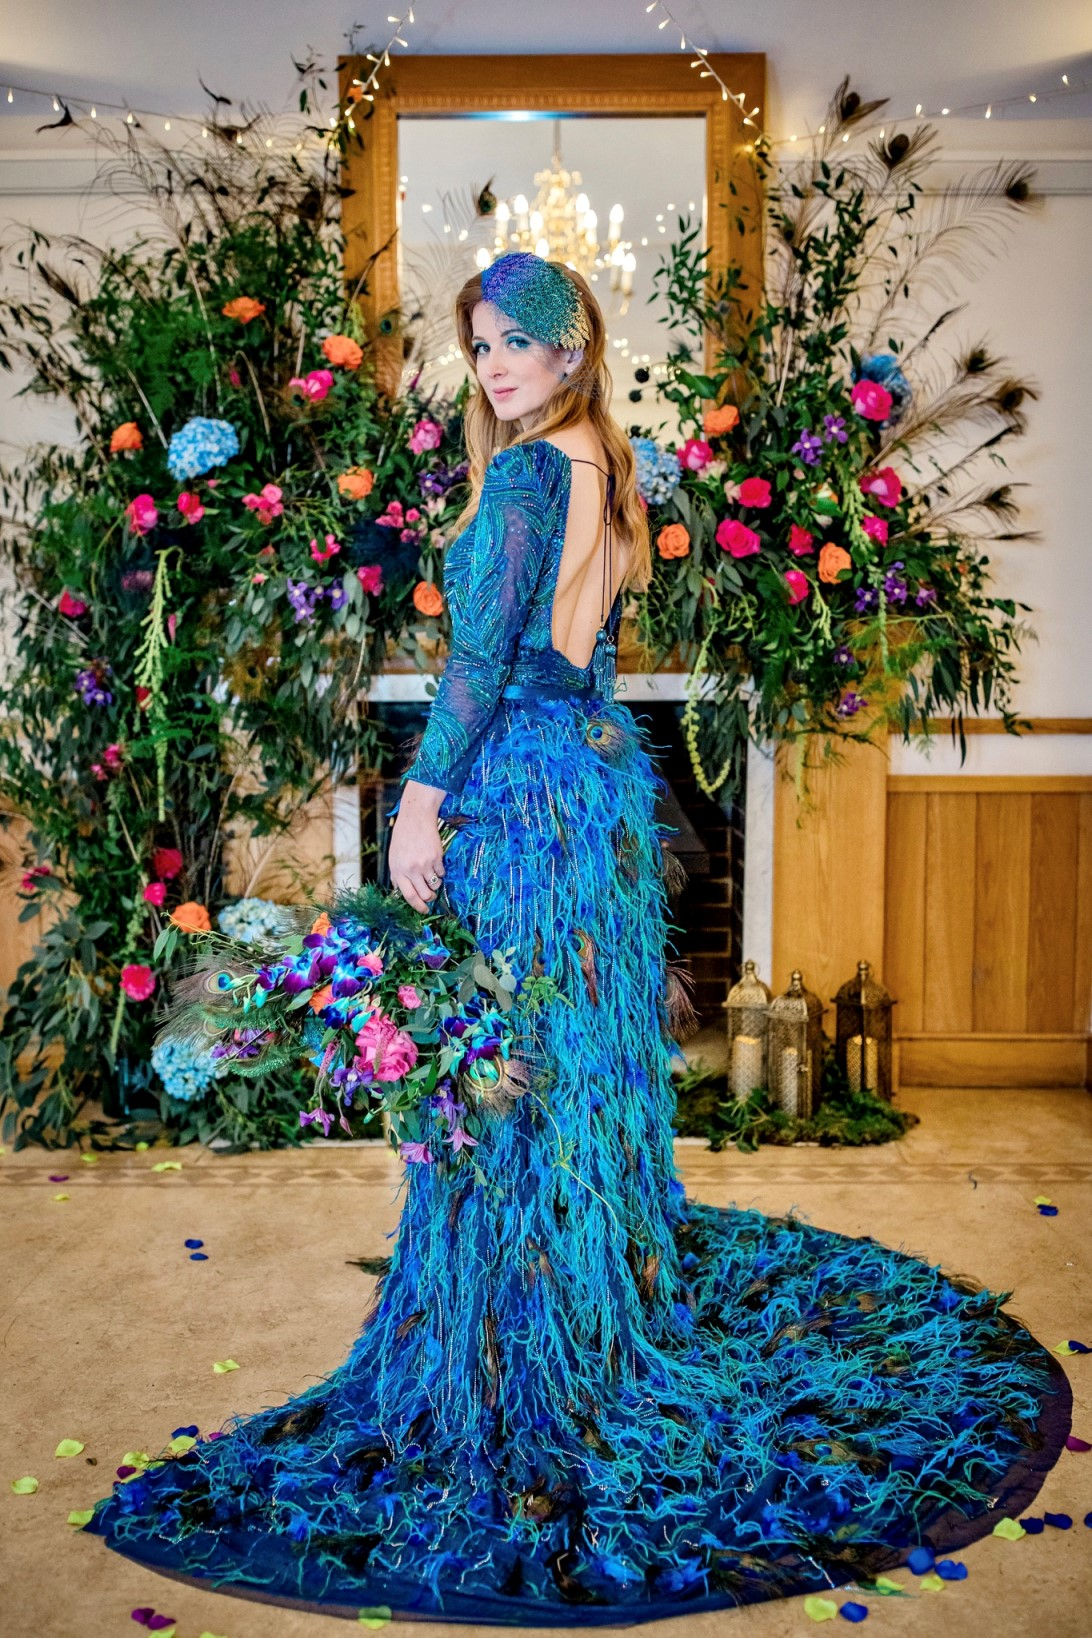 Peacock Wedding-Unique Wedding Dress- Peacock Wedding Dress- Coloured Wedding Dress- Alternative Wedding Dress